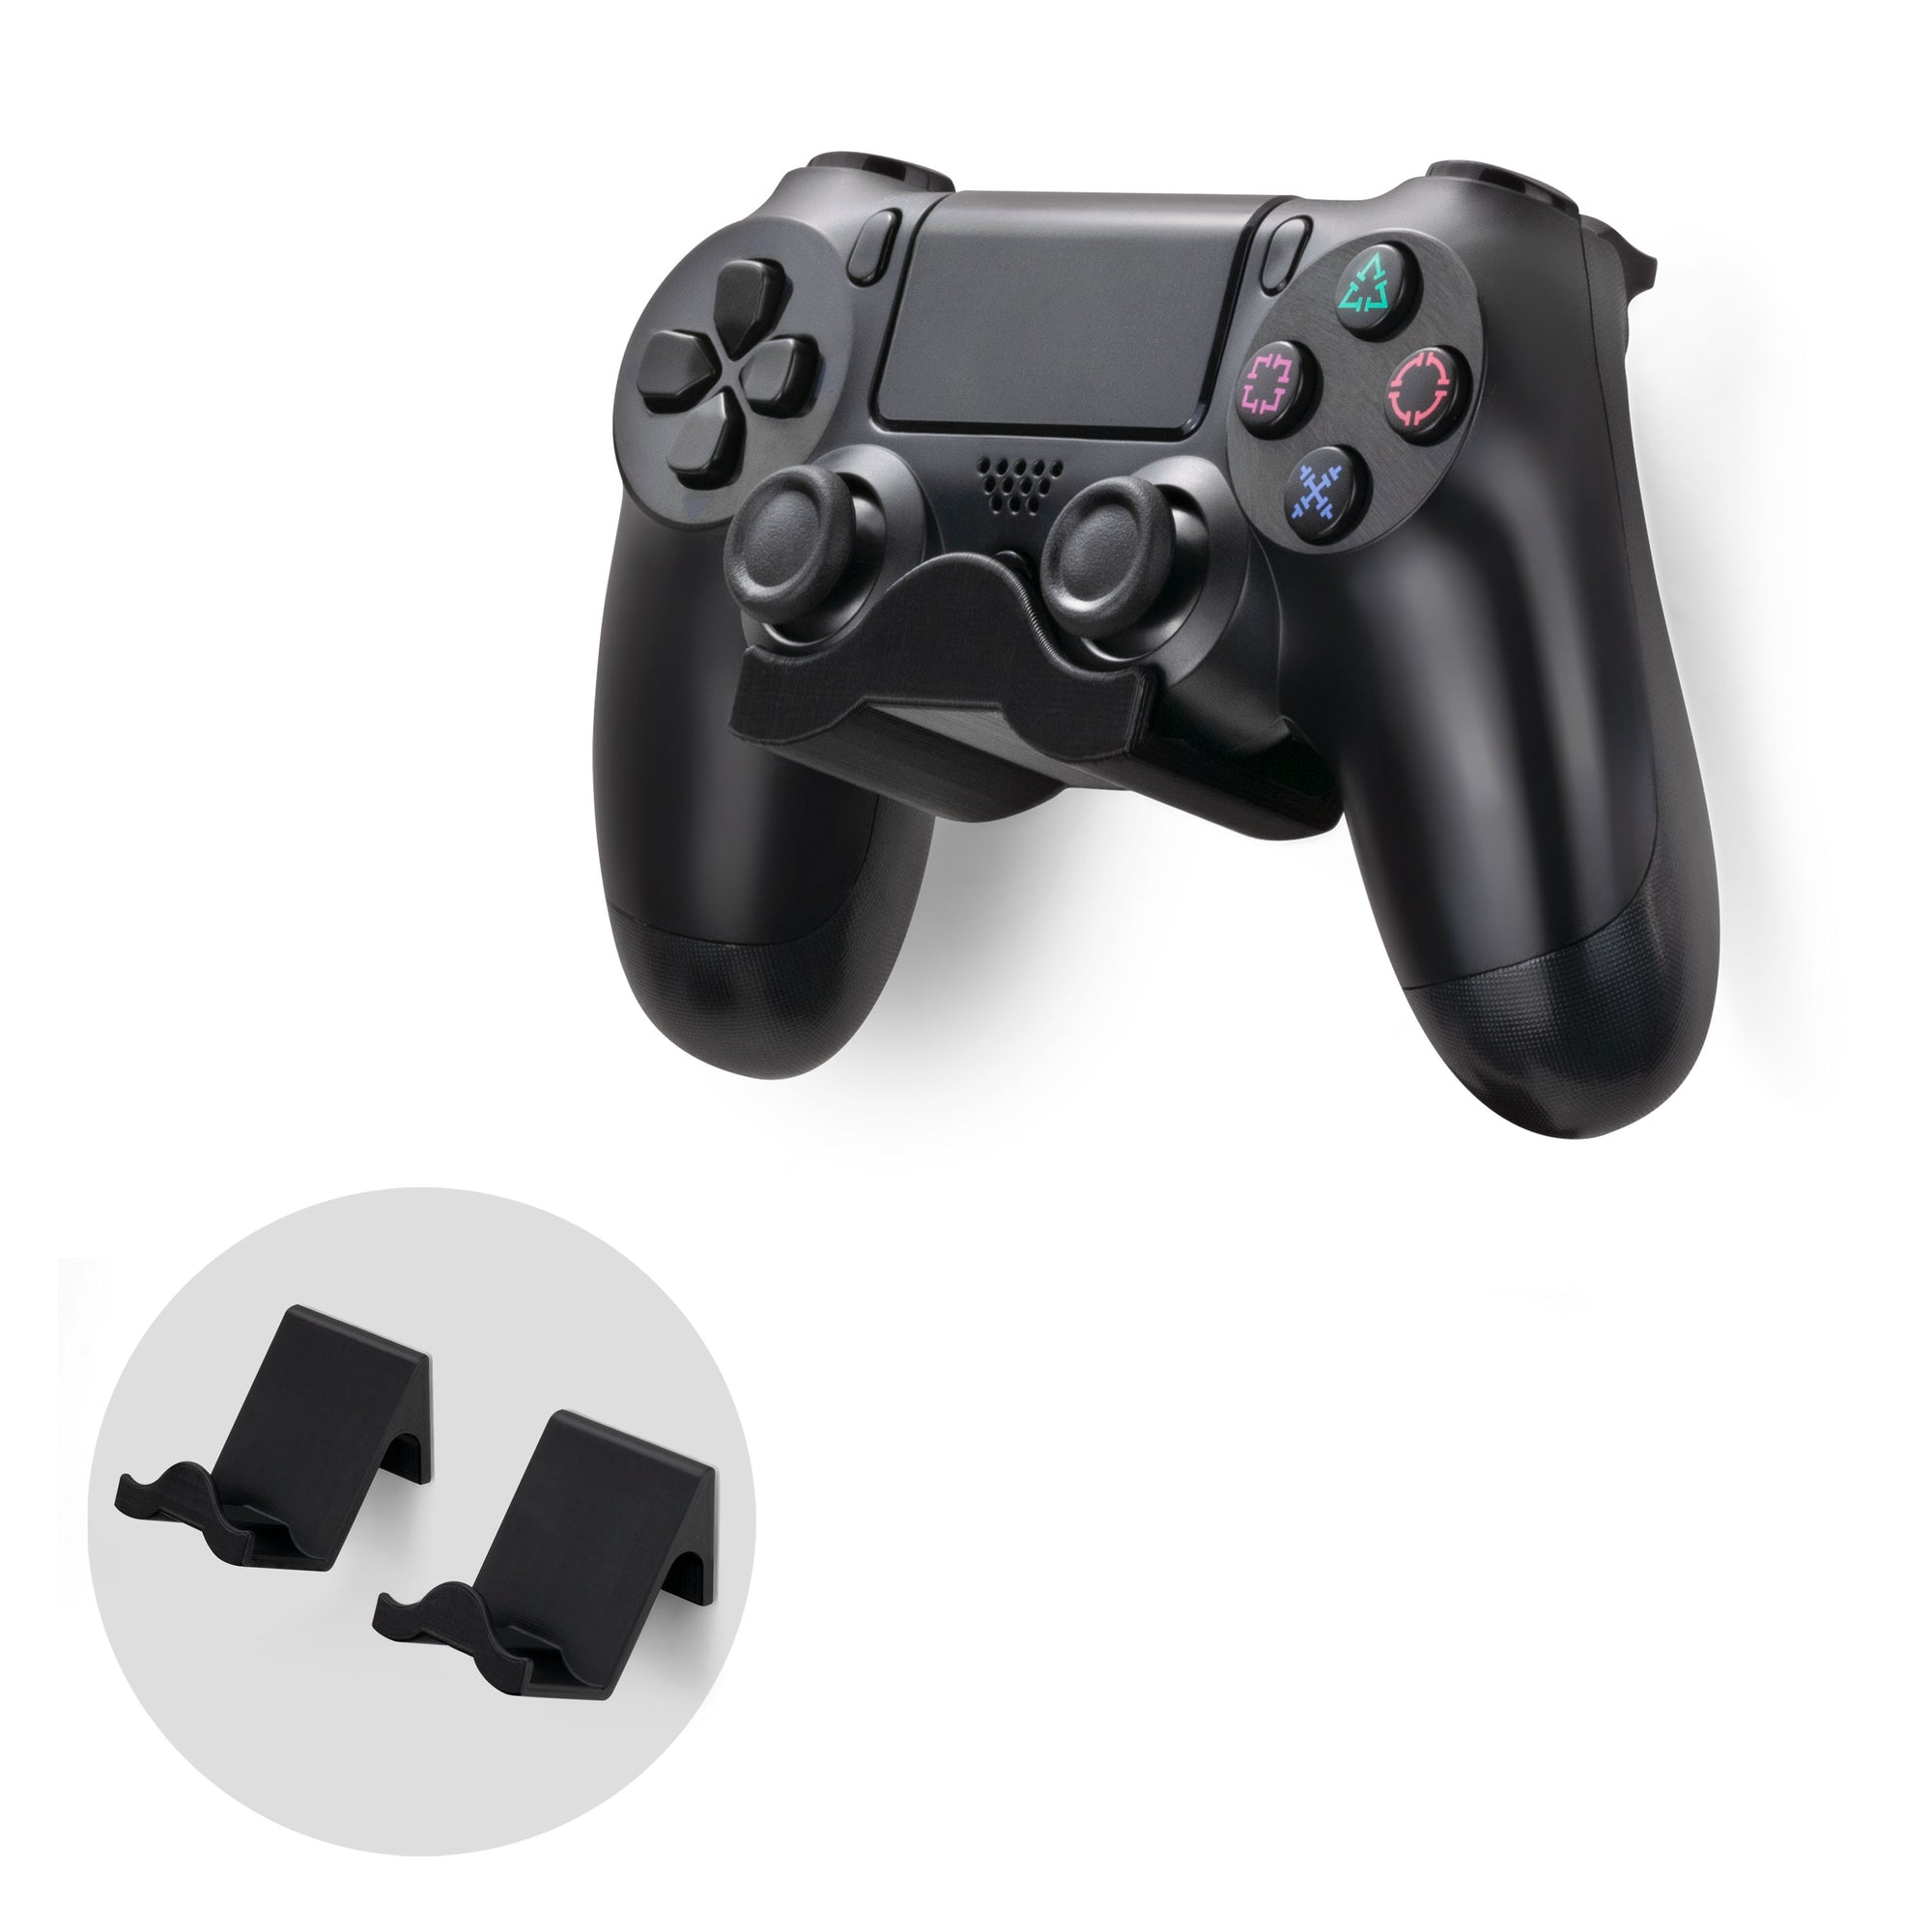 Brainwavz Sony PS4 Game Controller Wall Mountable Holder - 2 Pack